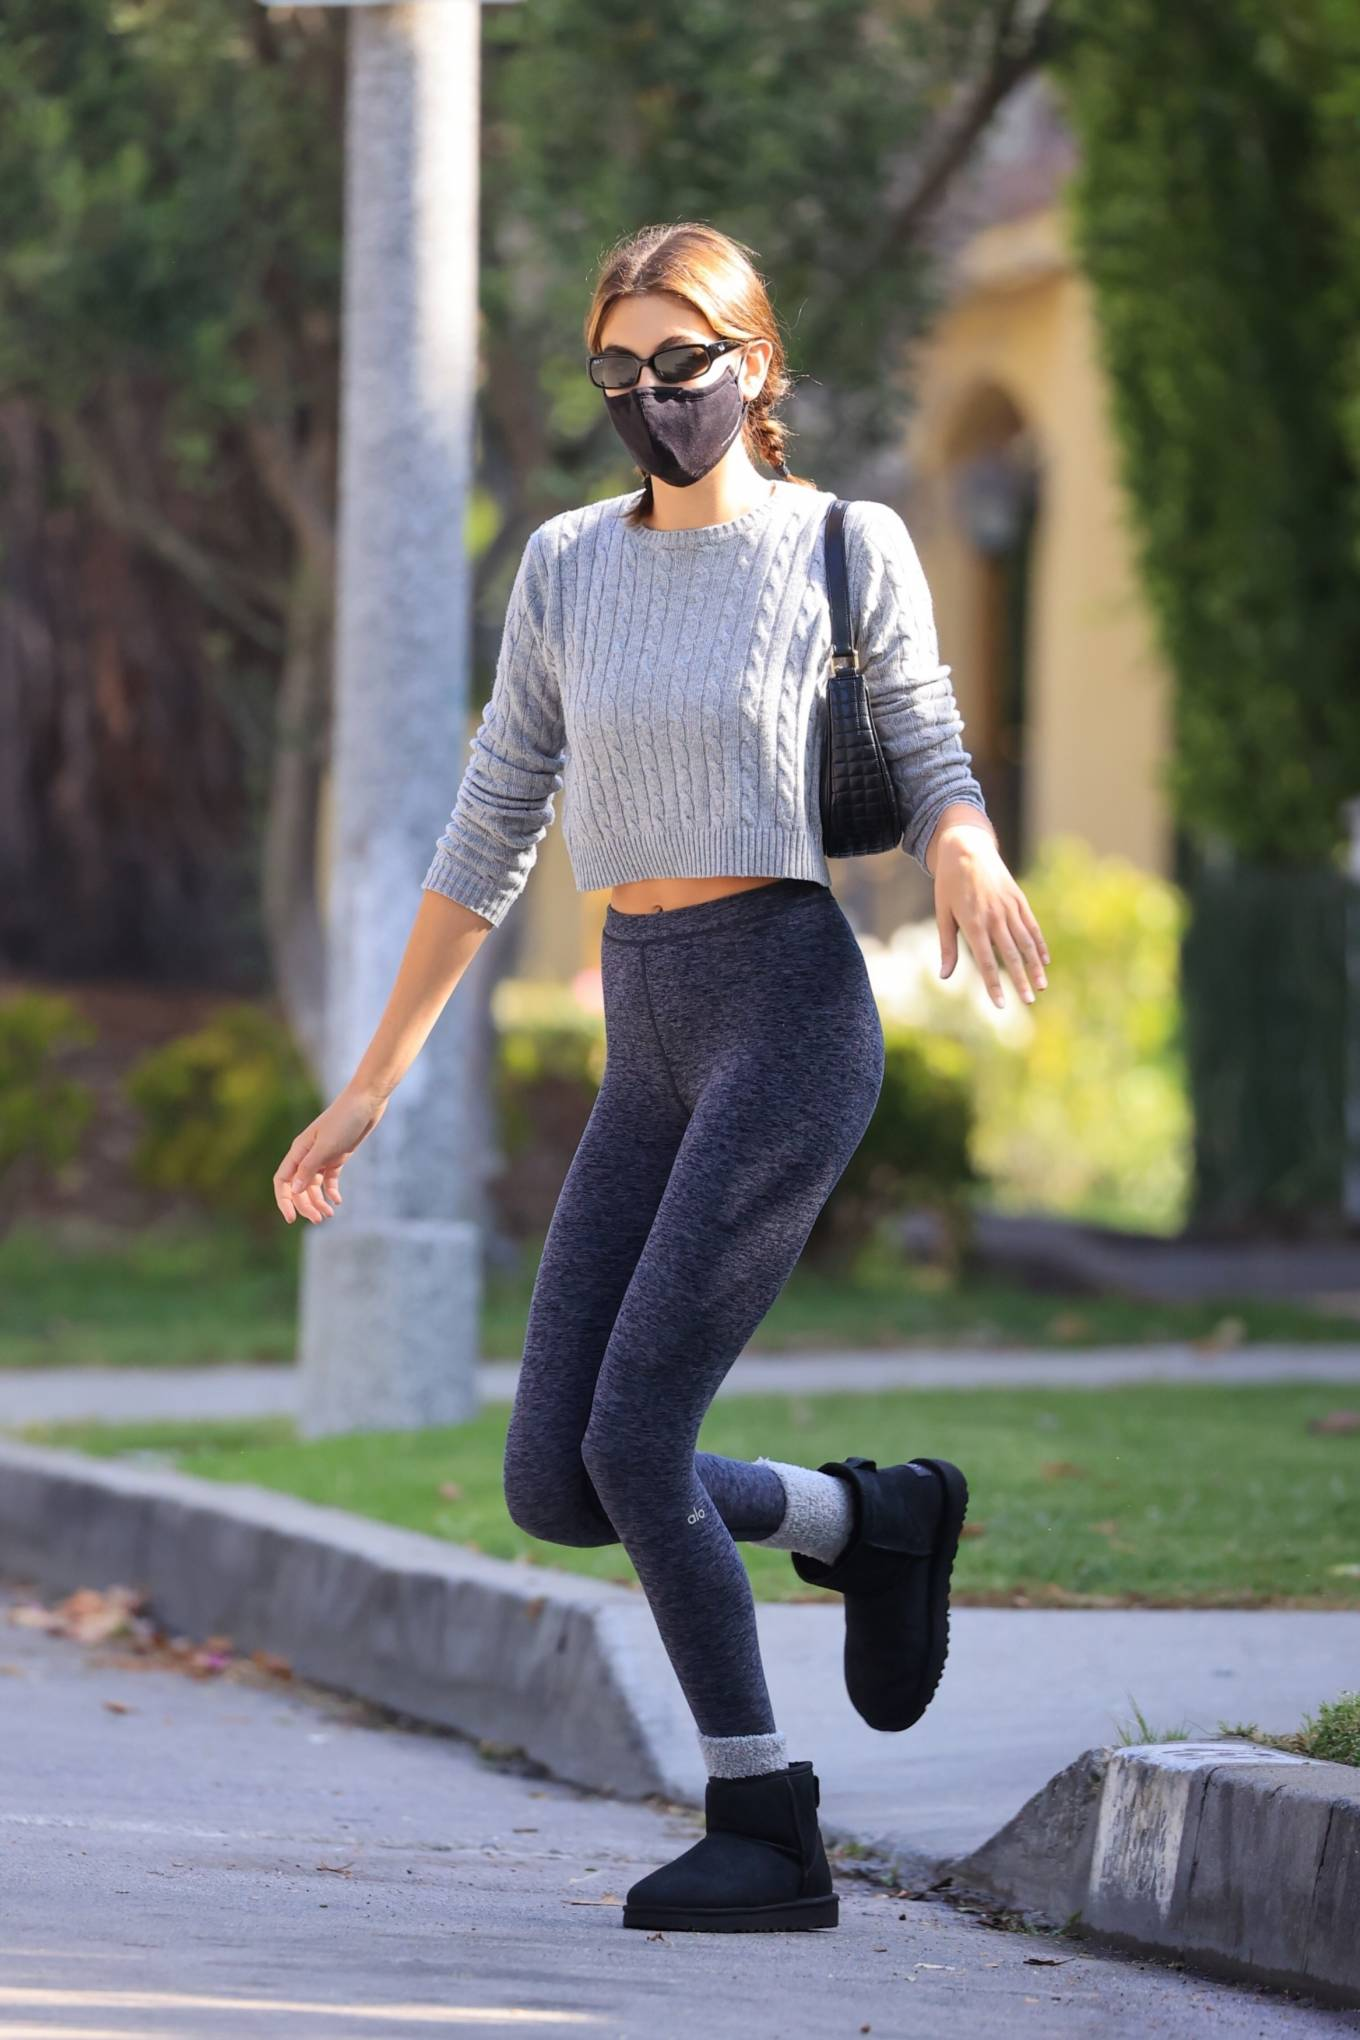 Kaia Gerber, woolen, Brandy Melville sweater, grey sweater, black Ugg boots, grey Alo Yoga workout leggings, rolled sleeves, crew neck, cropped, midriff, pattern, knit, stomach length, black Celine shoulder bag, fitted, black Ray Ban sunglasses. Kaia Gerber donning a fitted grey sweater with a woolen fabric, rolled sleeves, pattern and a crew neck